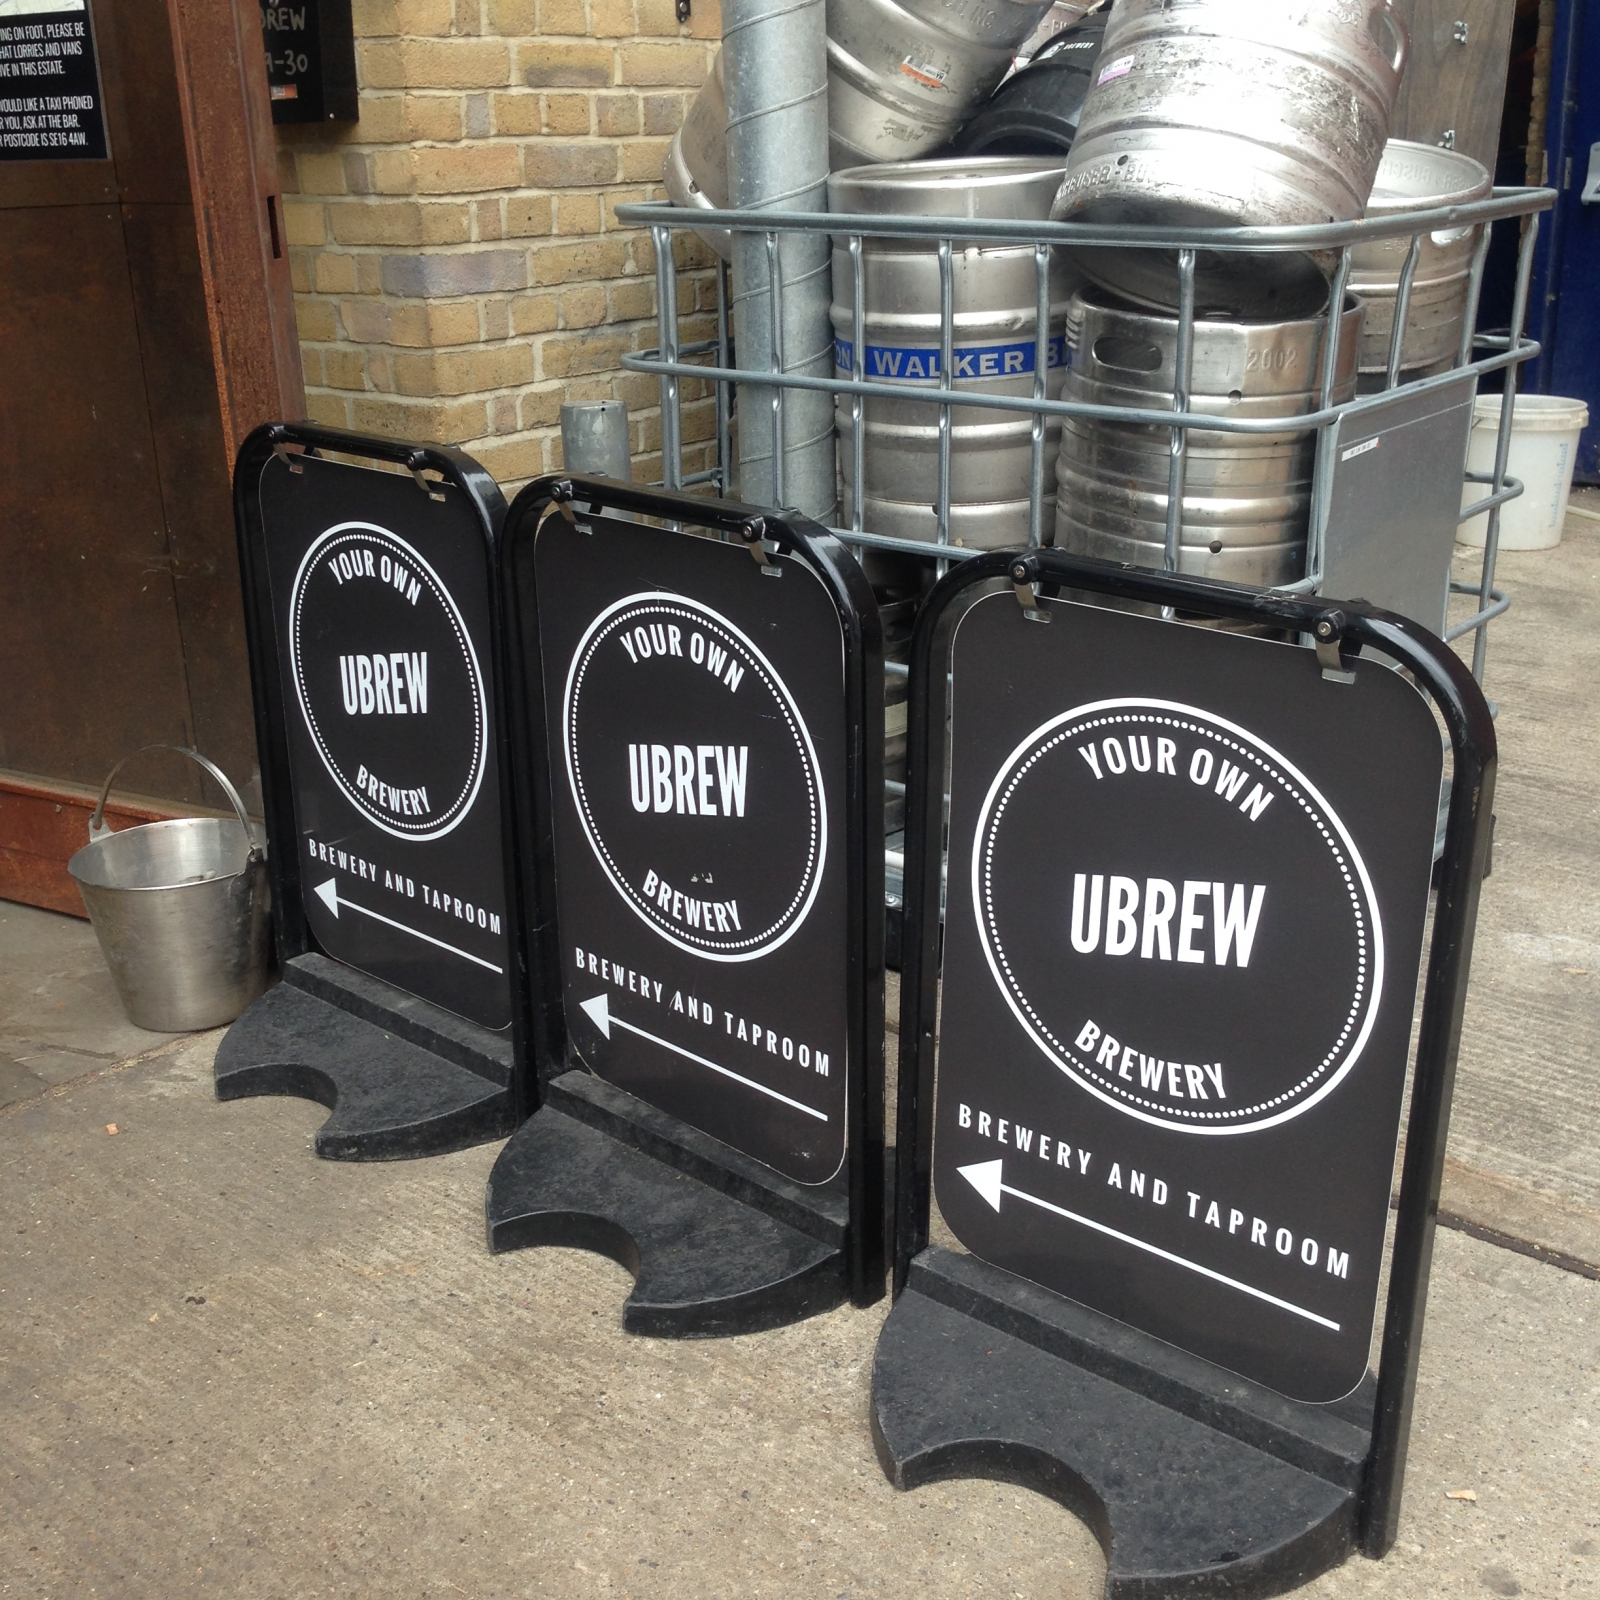 UBREW brewery